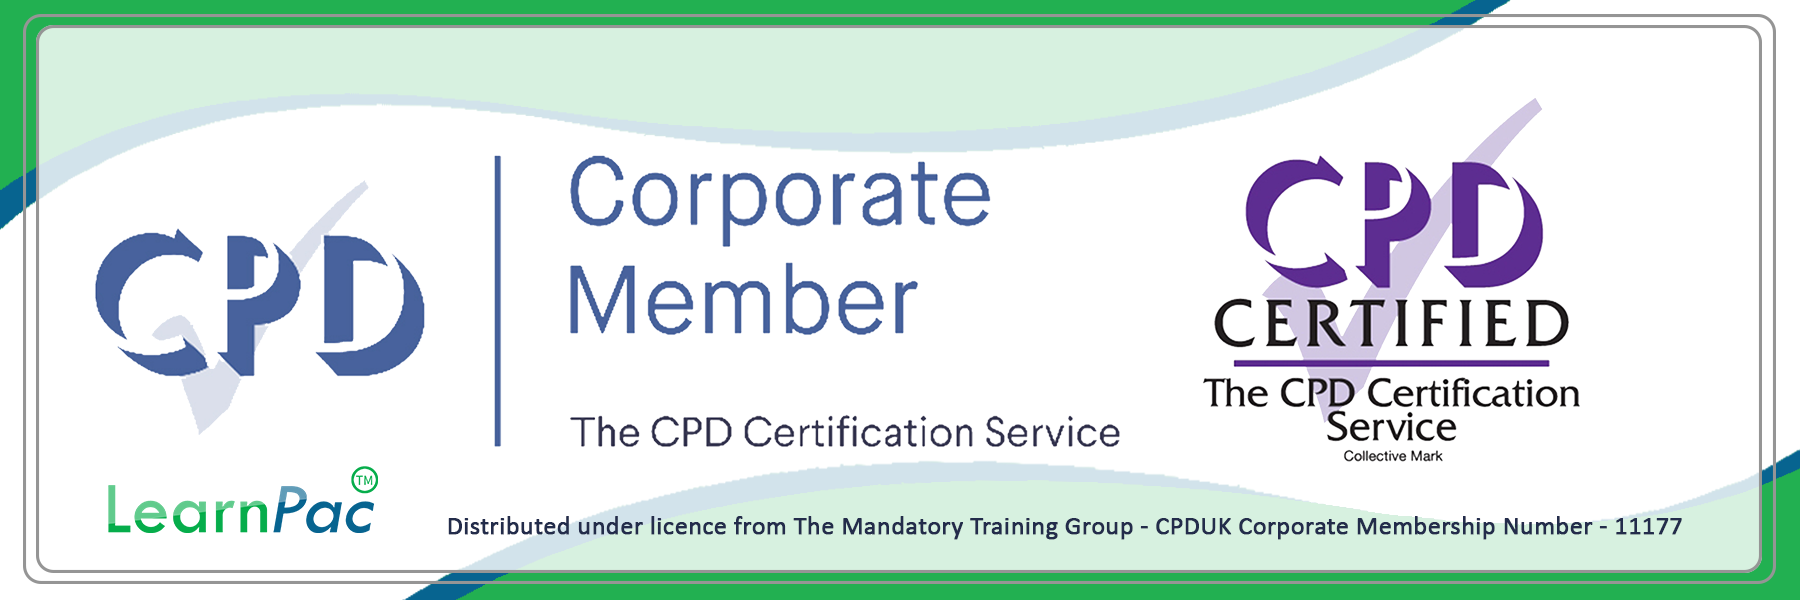 Dementia Awareness - Online Training Course - CPD Accredited - LearnPac Systems UK -